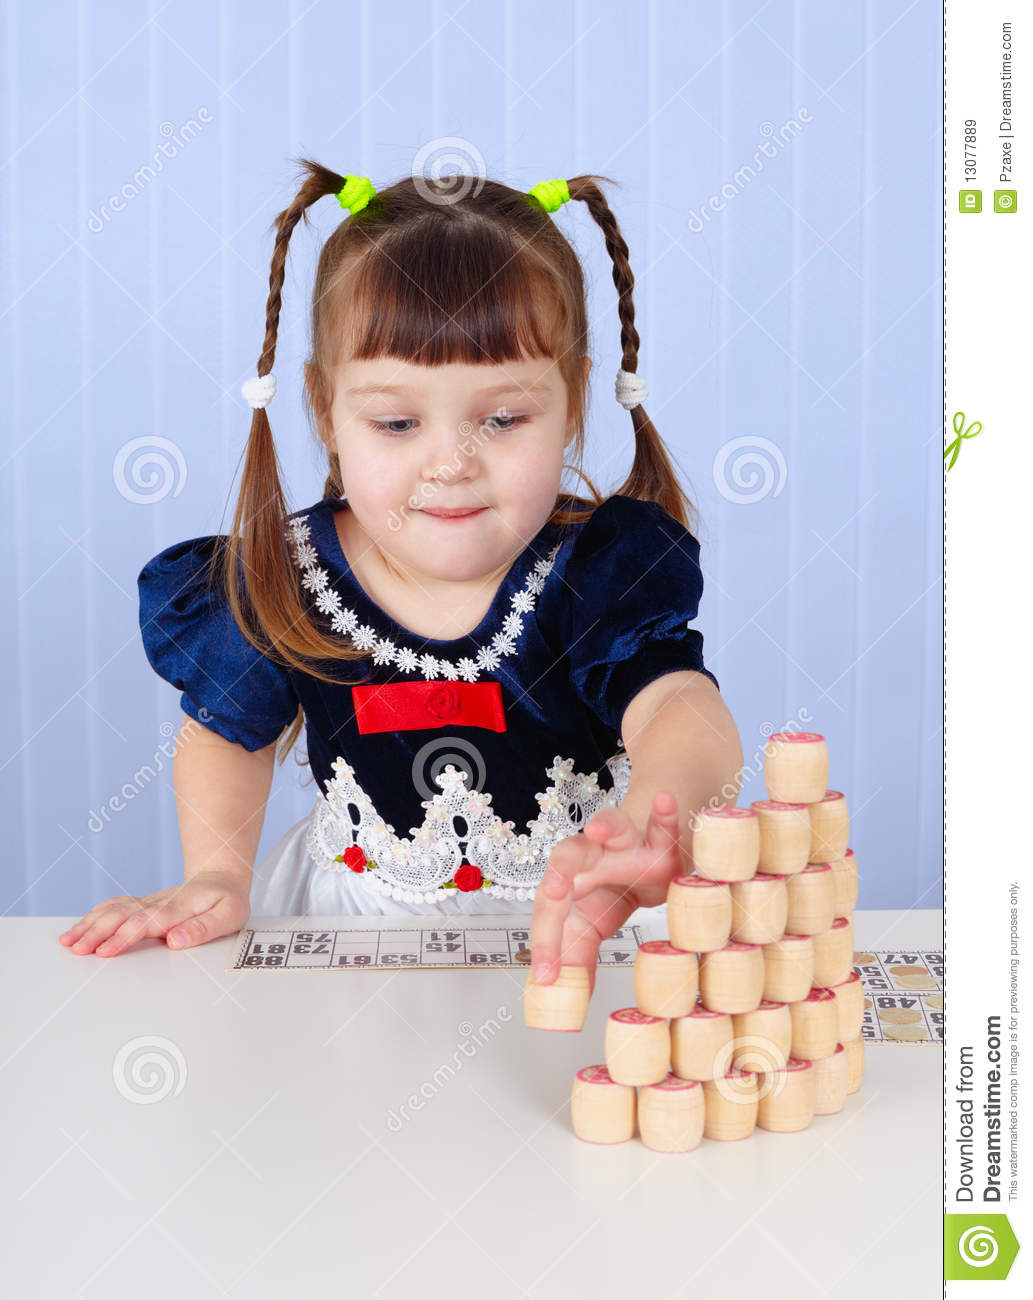 Little Girl Toys : Little girl playing with toys on table royalty free stock